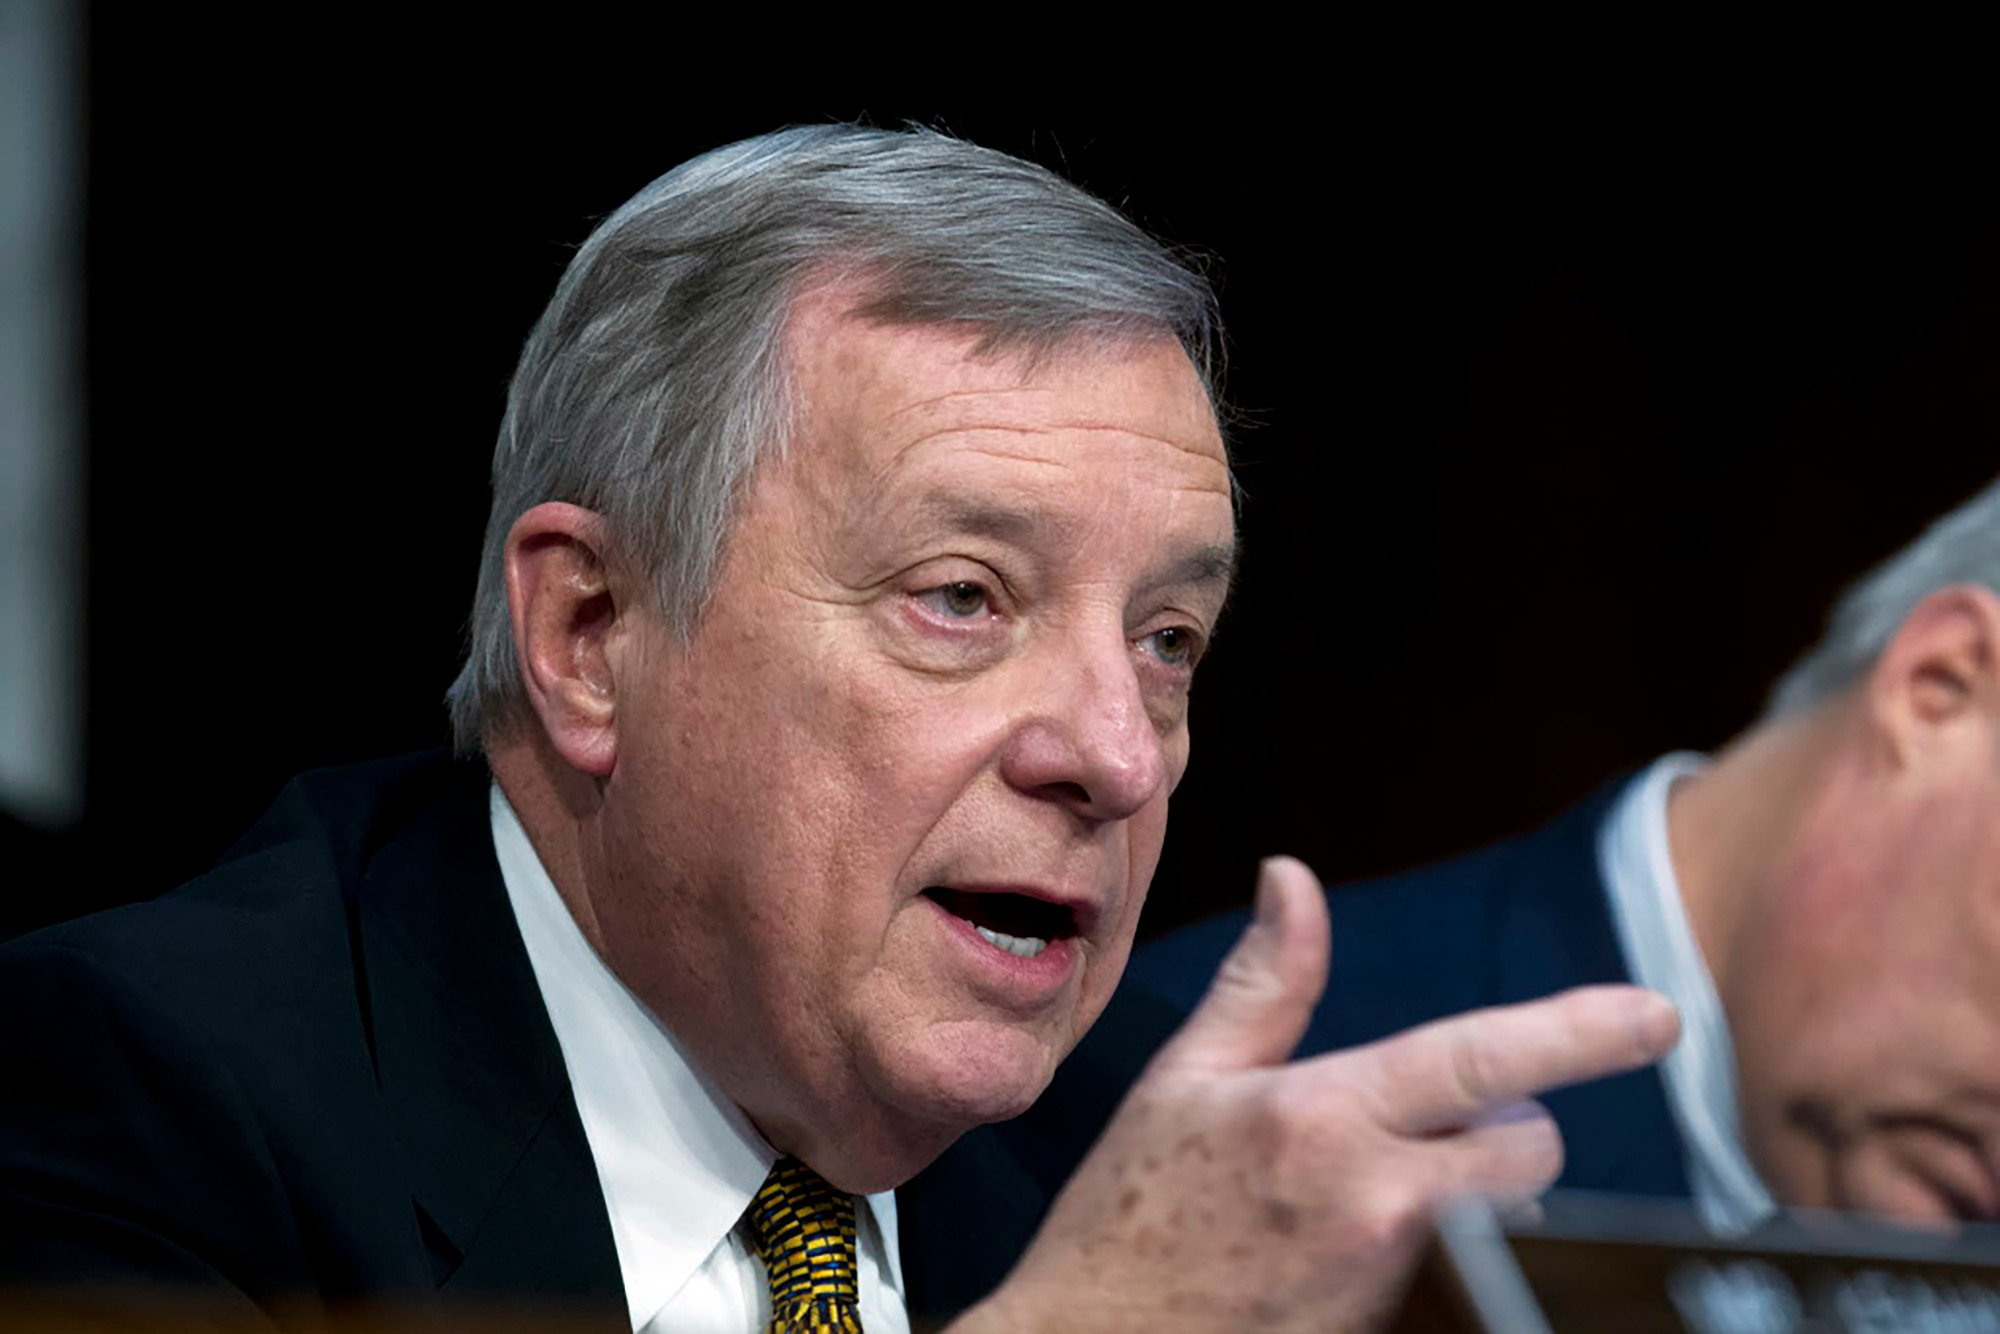 Dick Durbin doubles down on claim Trump used 'shithole' slur